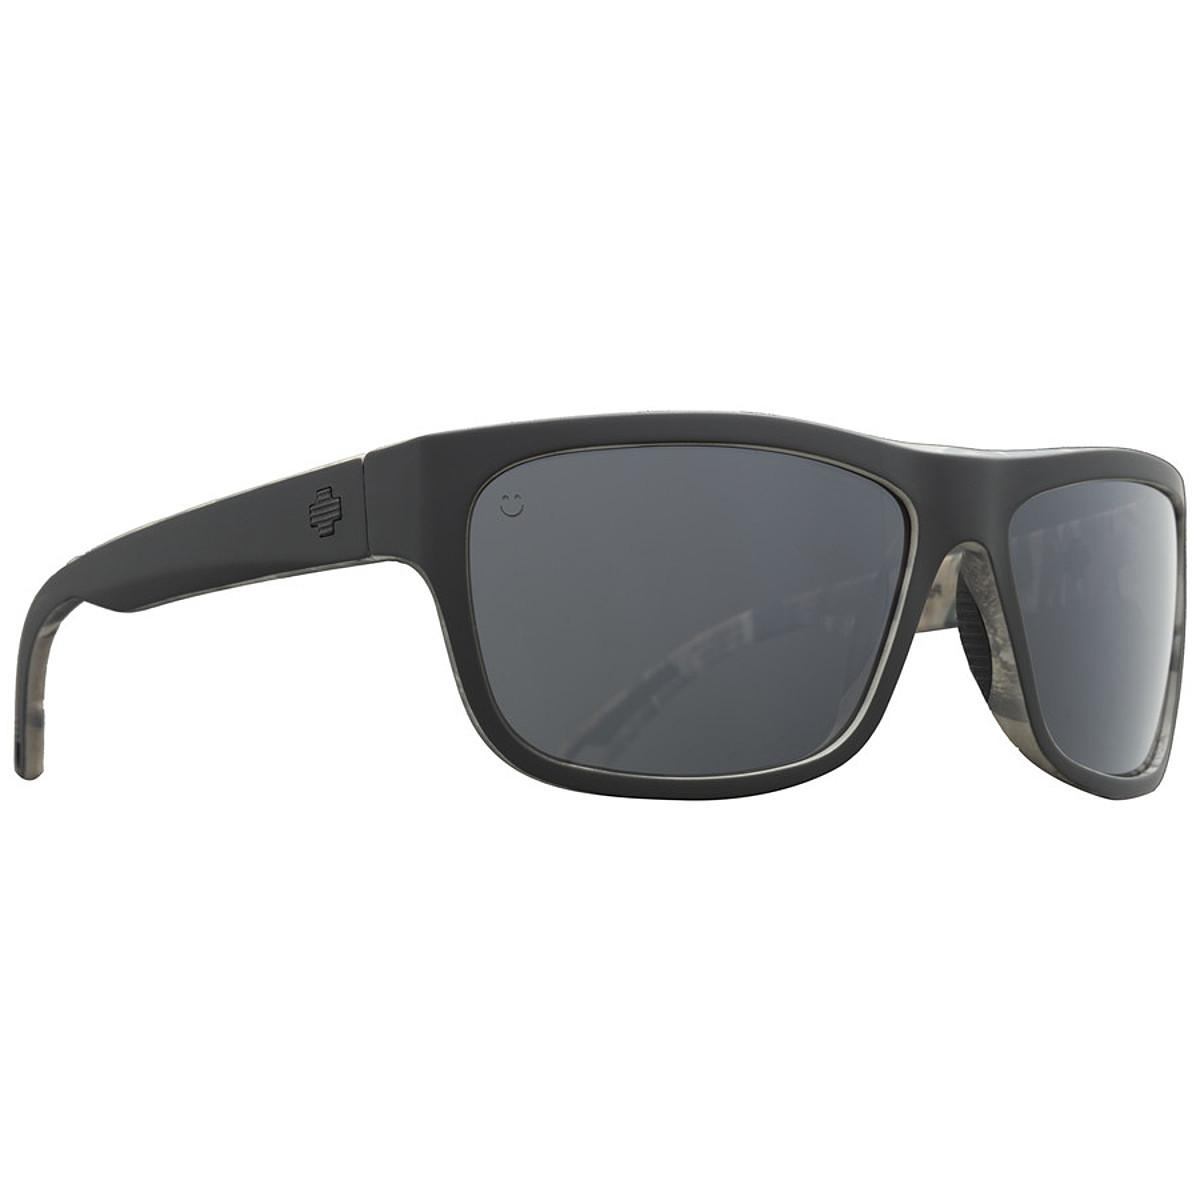 d71a4a97d62c0 Spy Angler Sunglasses - Polarized Decoy